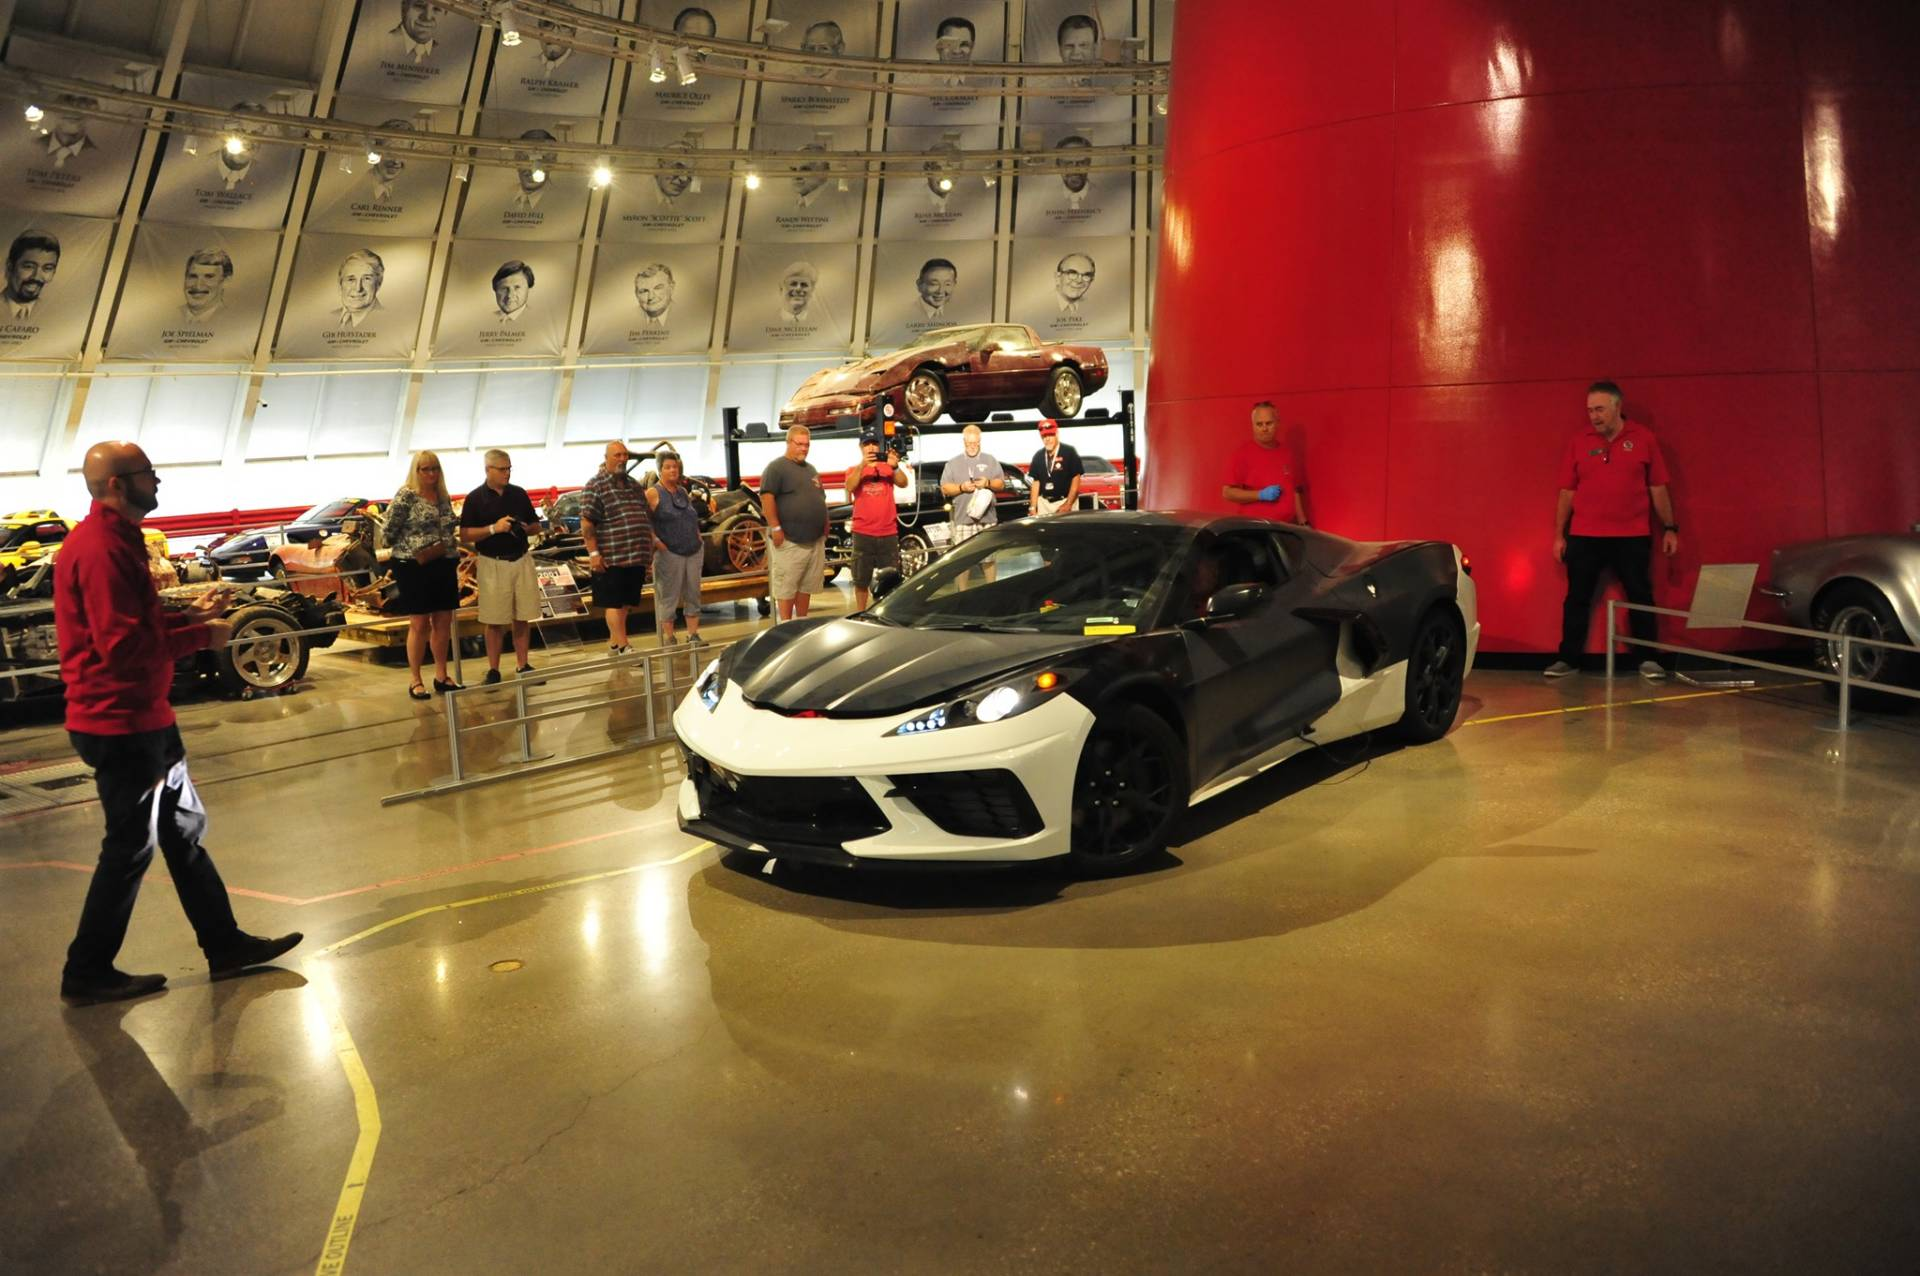 Corvette-Development-Prototype-at-national-corvette-museum-5